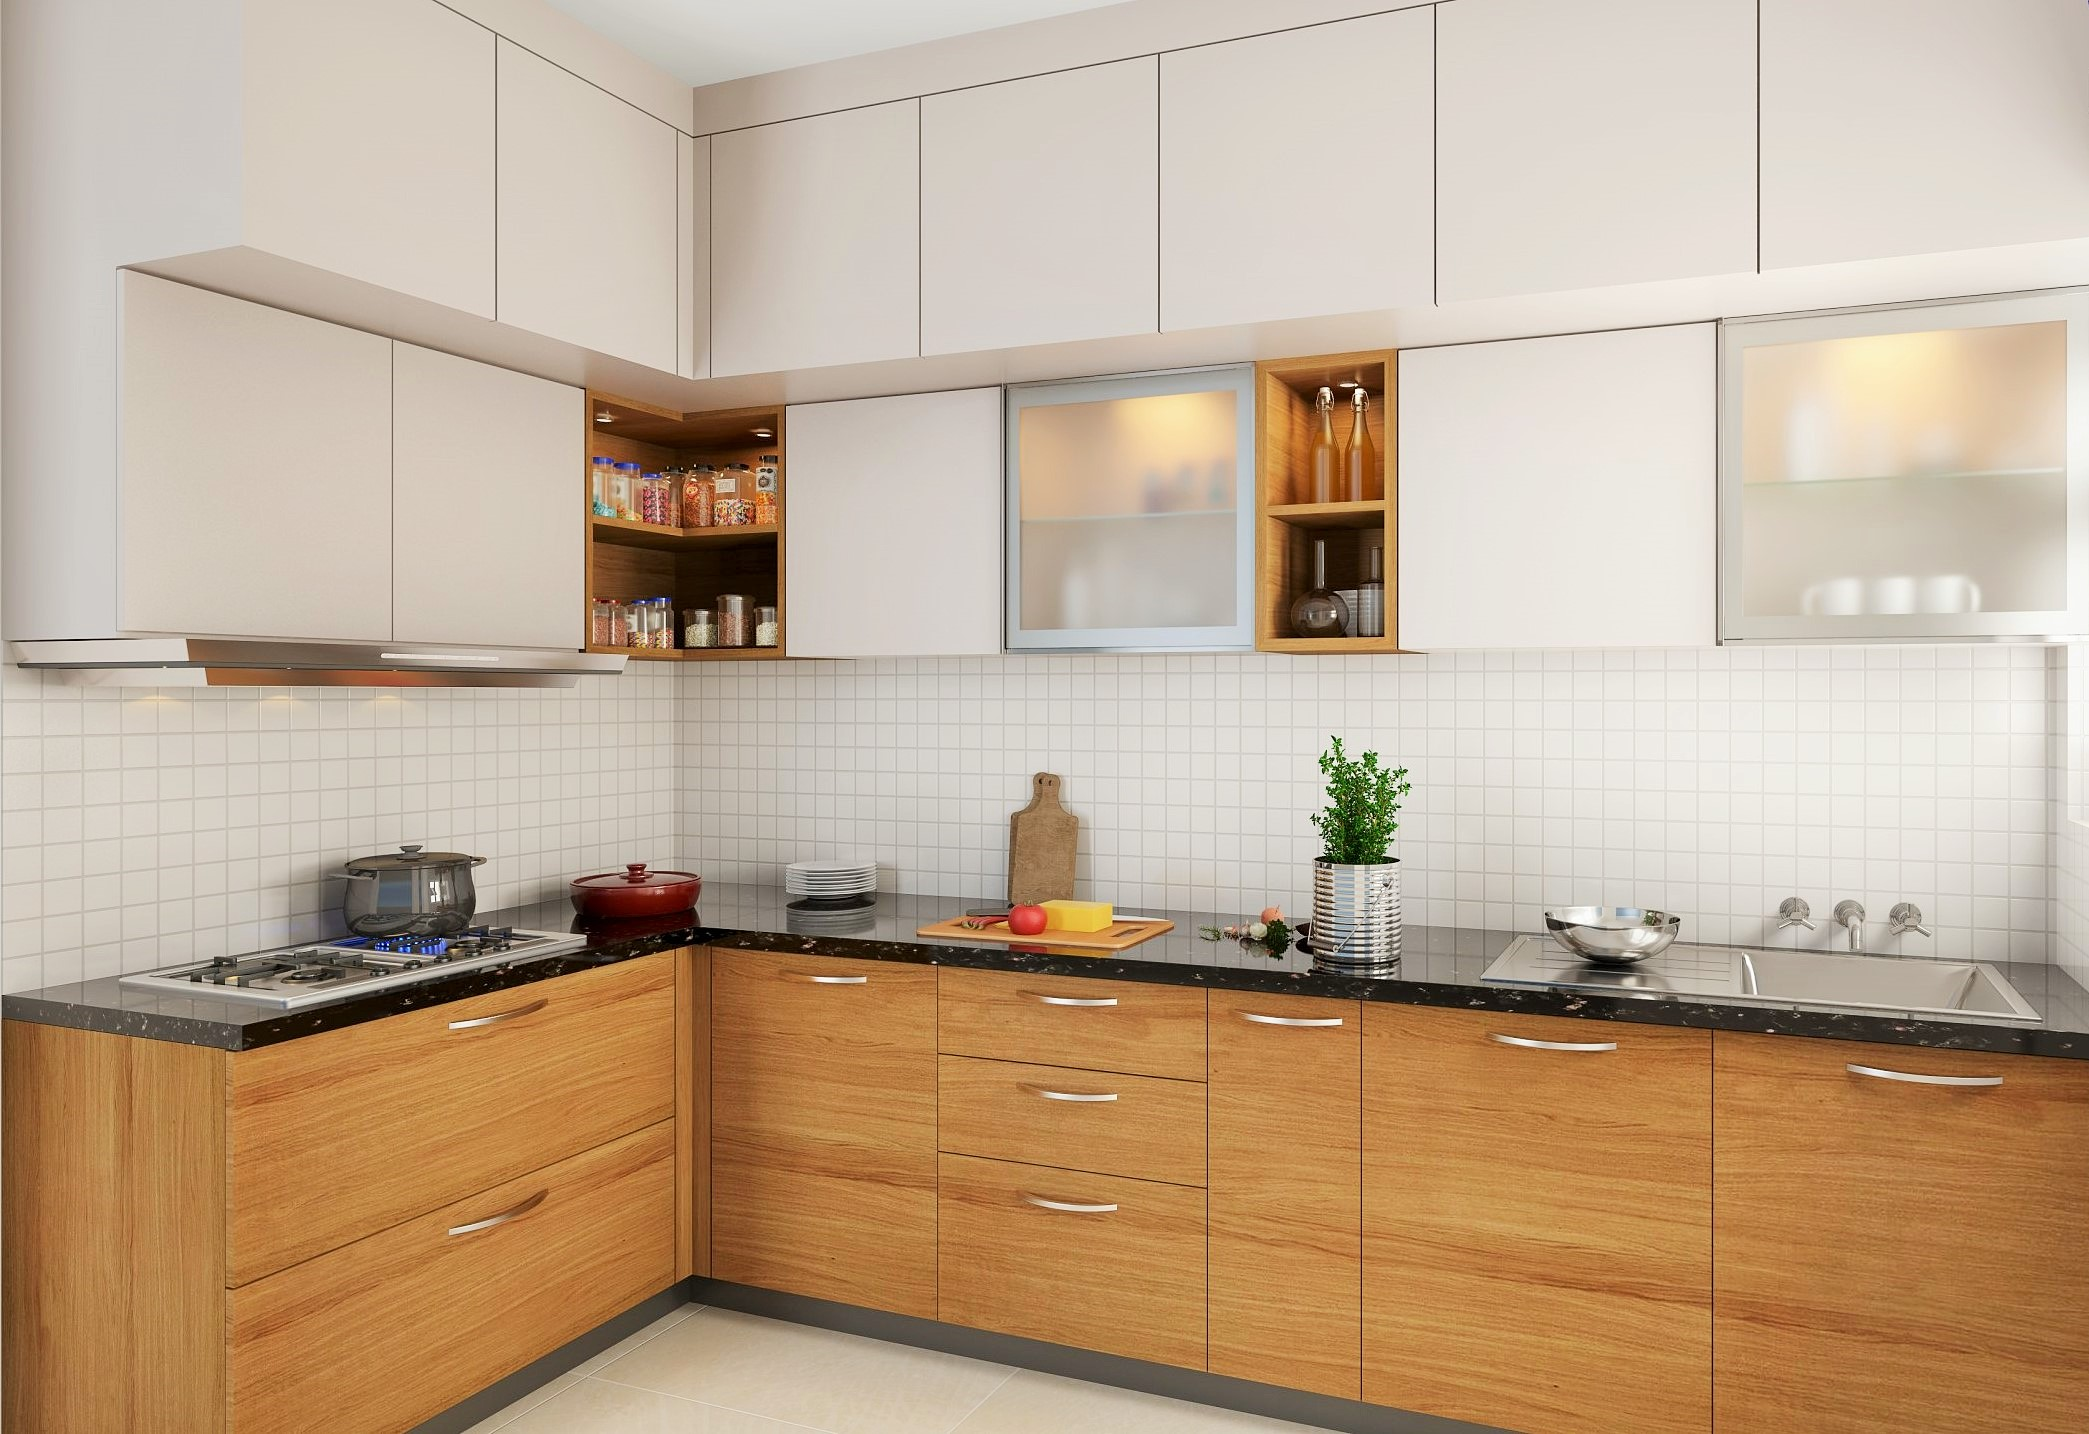 13 Small Kitchen Design Ideas That Make A Big Impact The Urban Guide